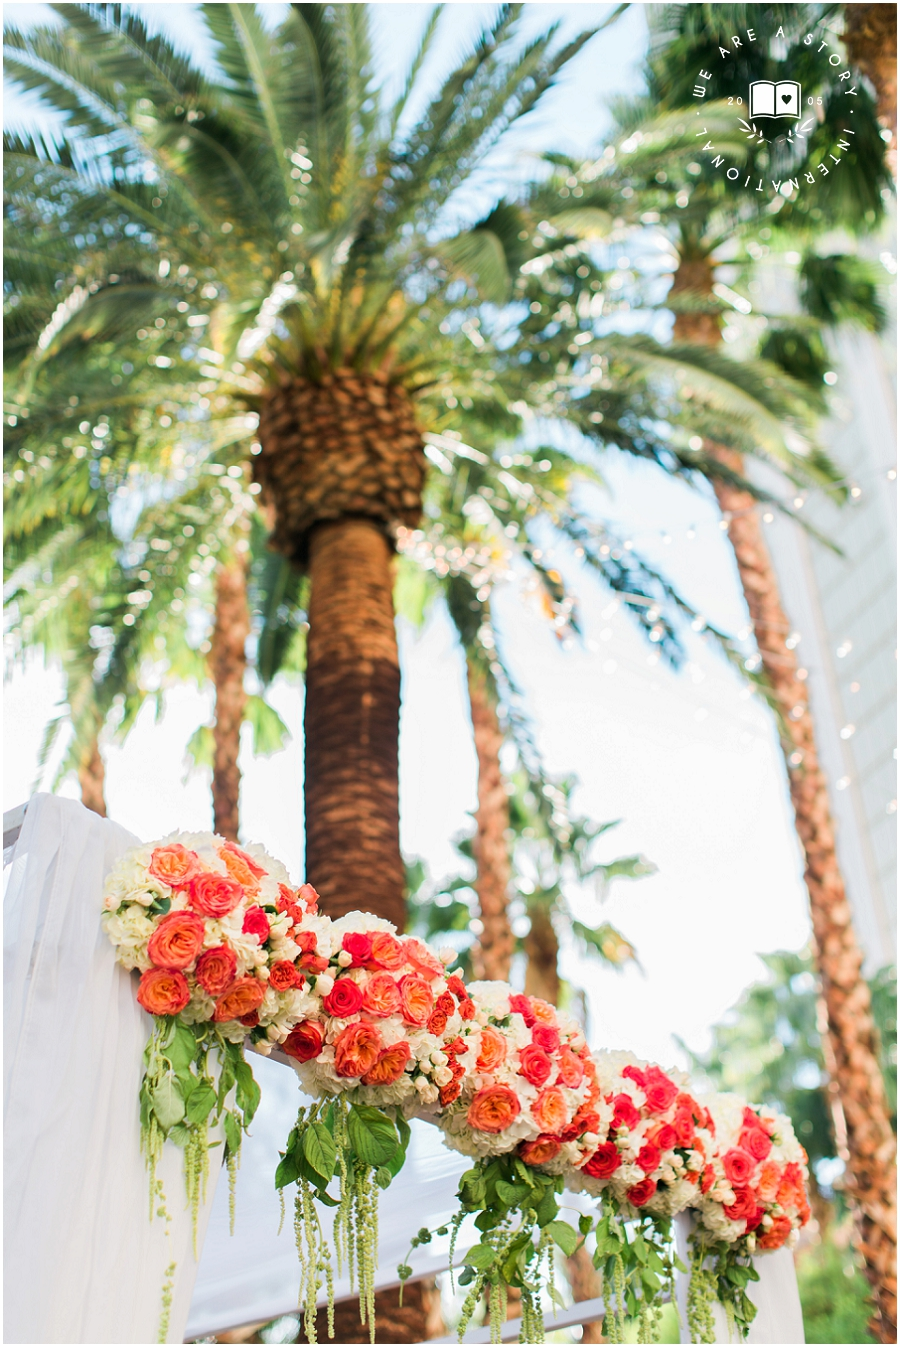 Four Seasons wedding photographer Las Vegas _ We Are A Story wedding photographer_2480.jpg